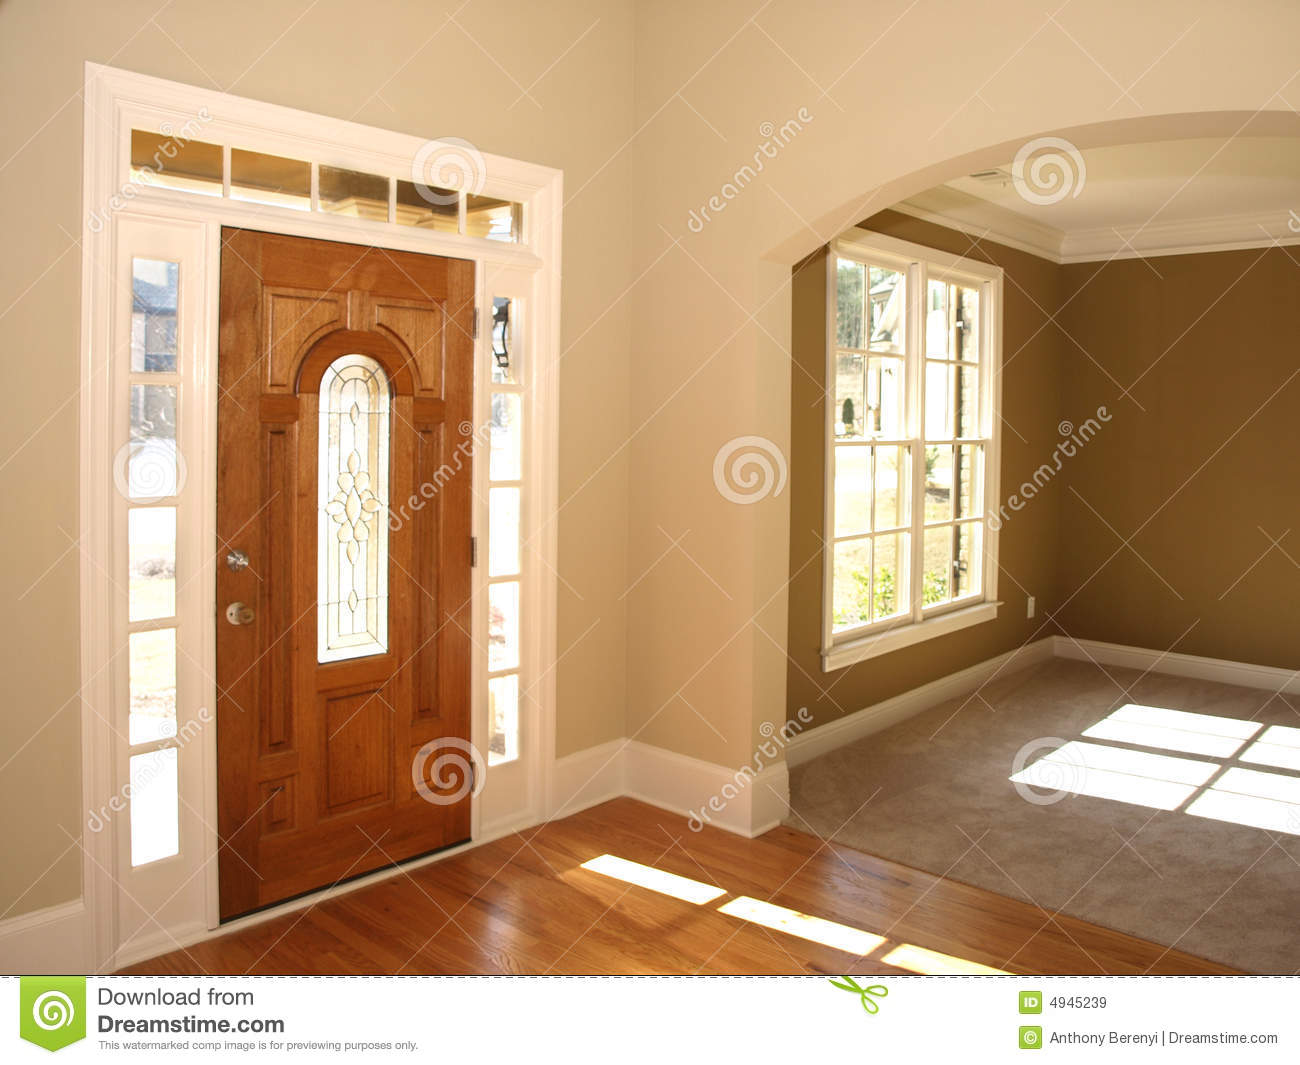 Royalty Free Stock Images Luxury Stained Glass Door Arch Room Image4945239 on living room entrance arch design